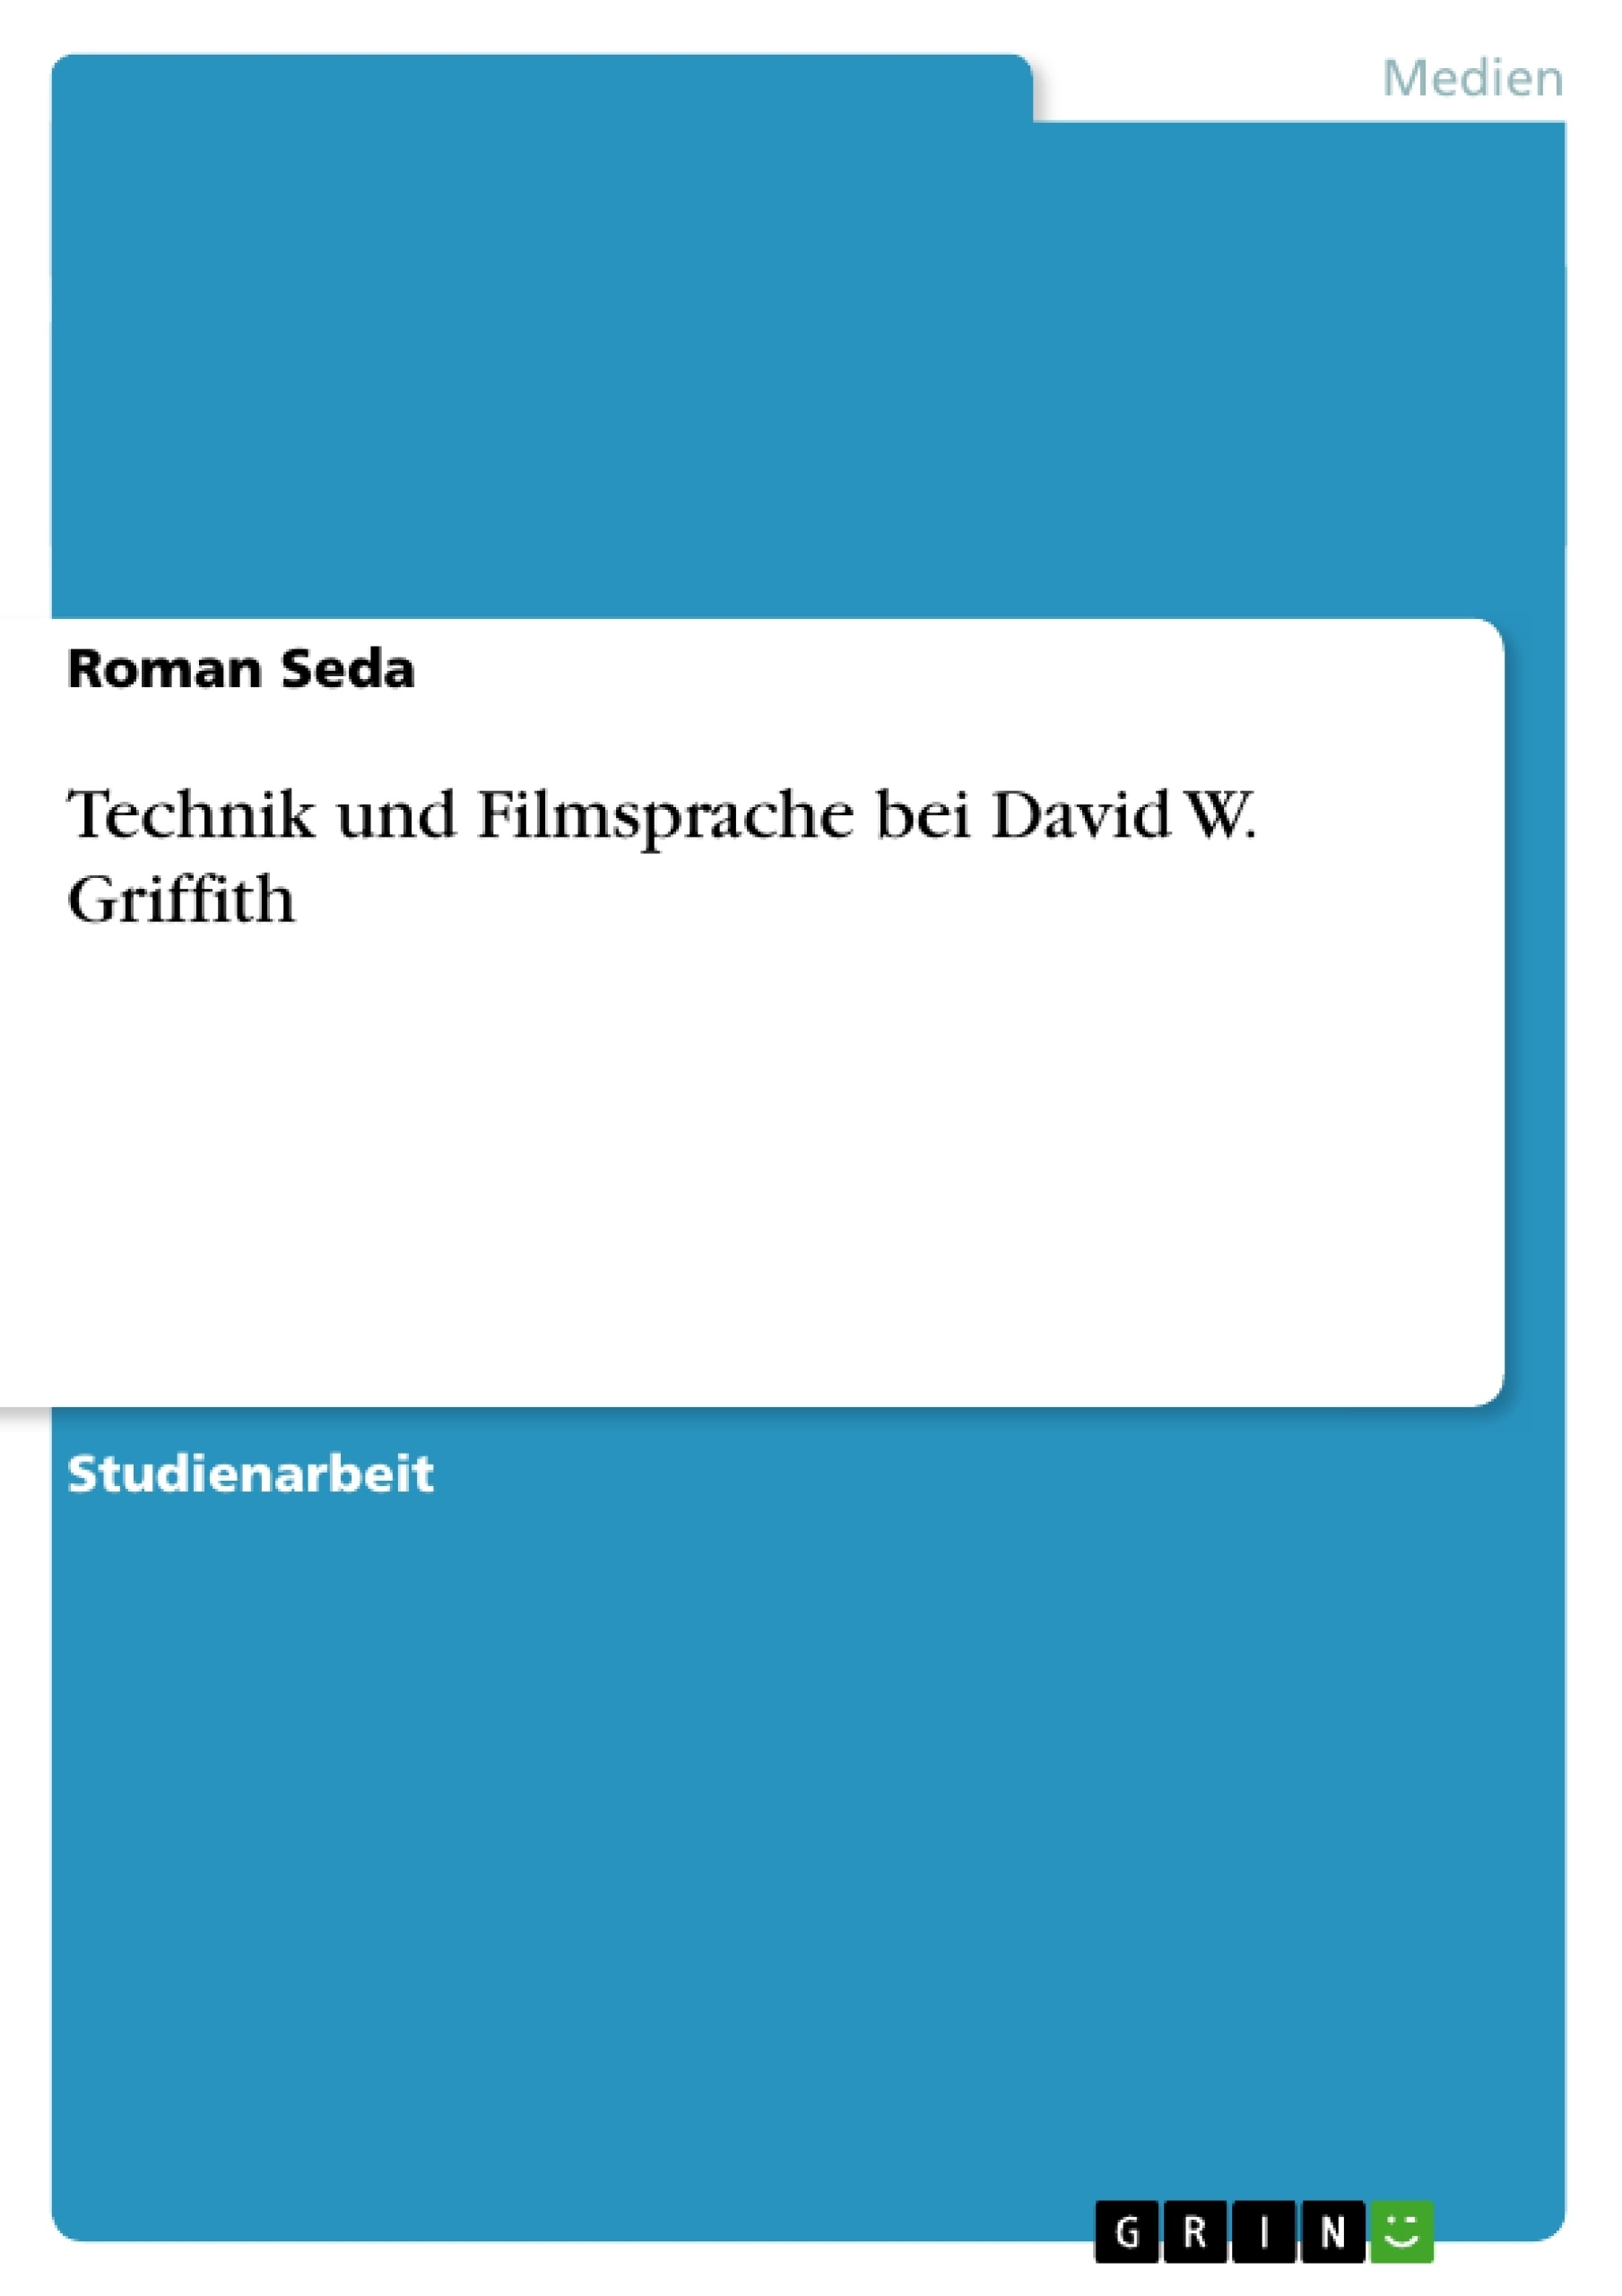 Titel: Technik und Filmsprache bei David W. Griffith